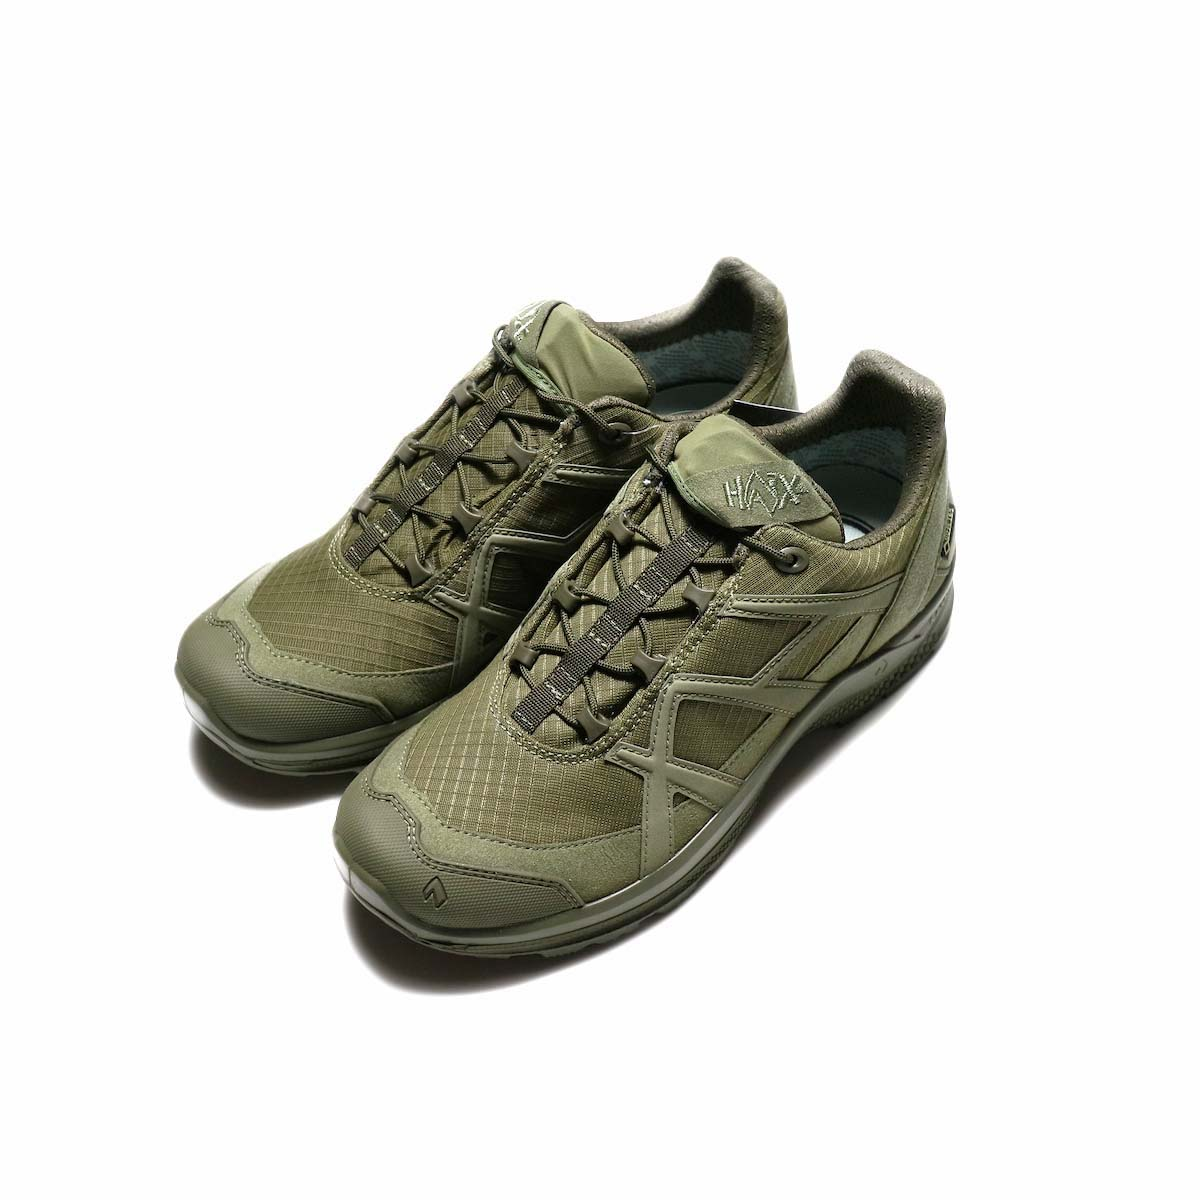 HAIX / BLACK EAGLE - ATHLETIC 2.1 GTX LOW (Sage)